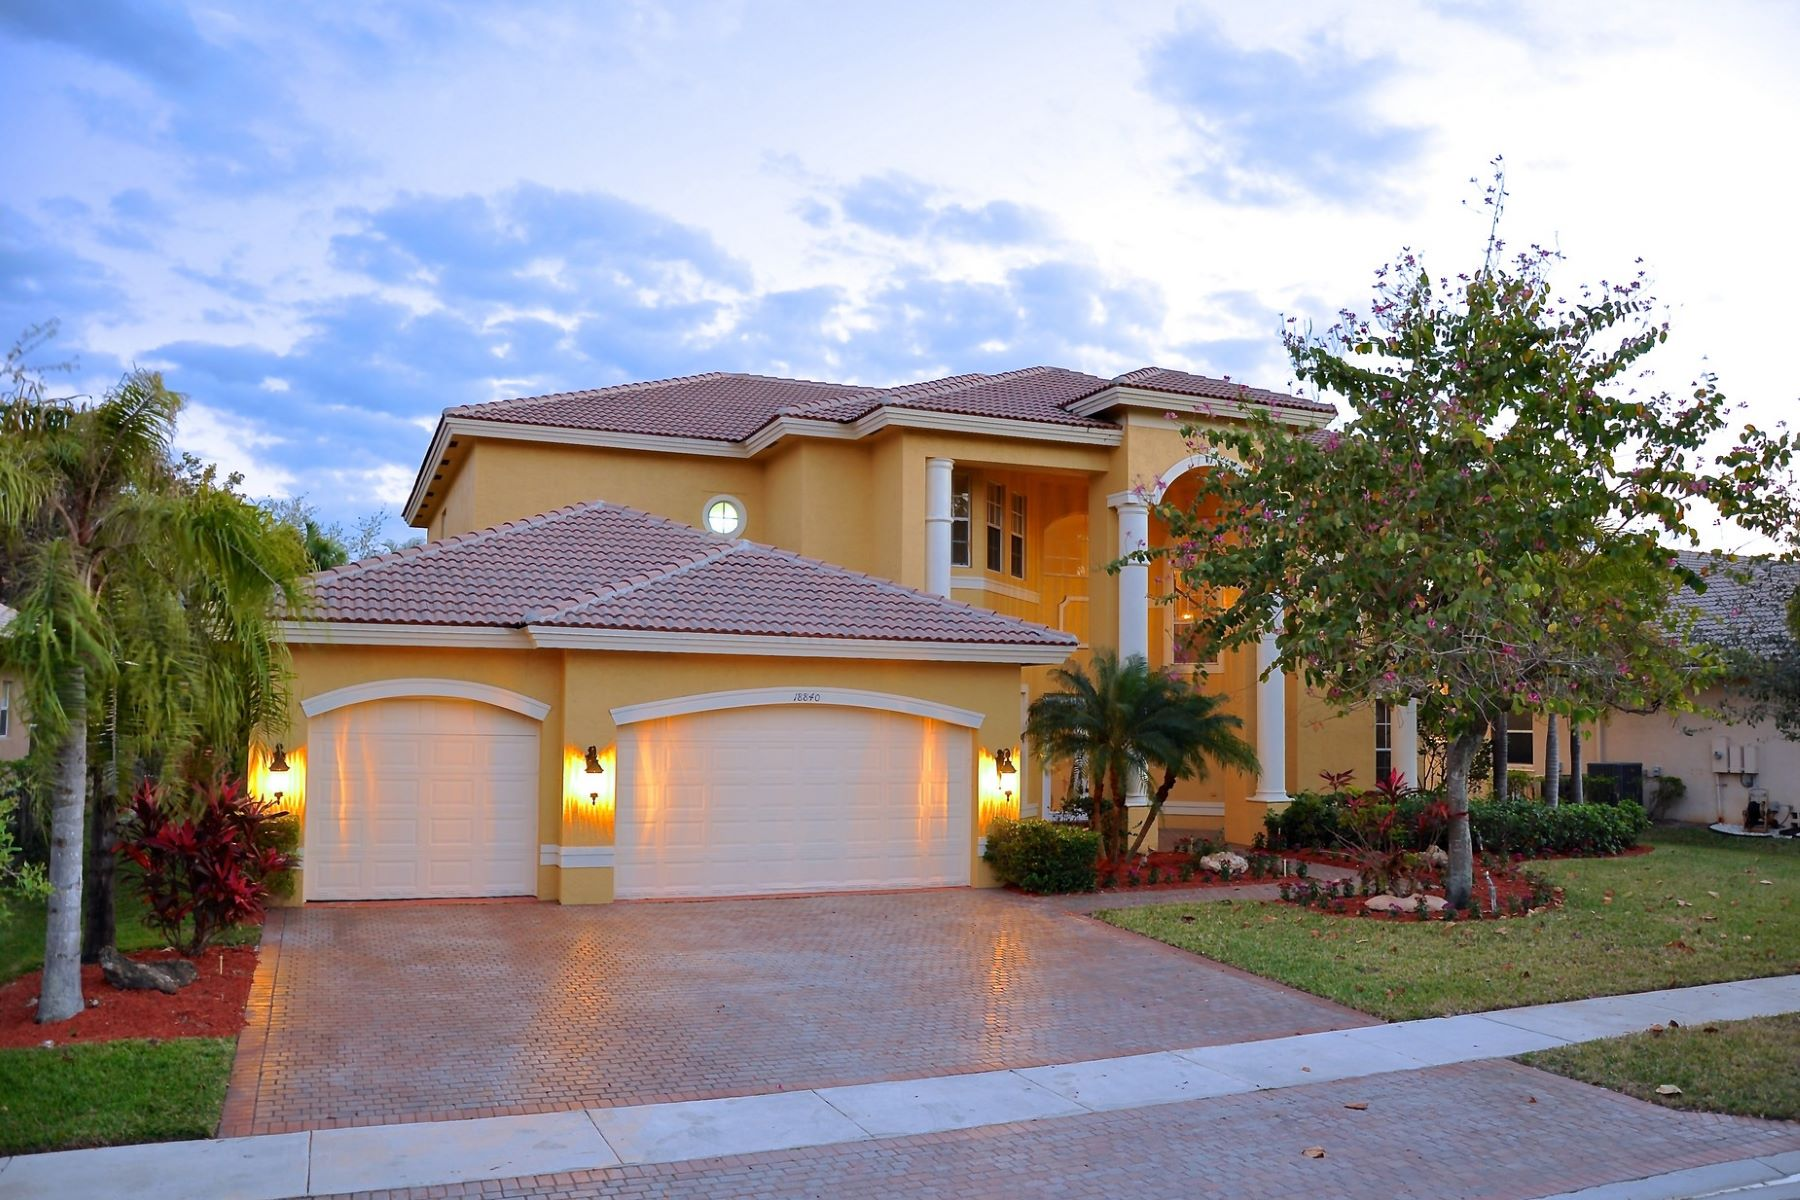 House for Sale at 18840 SW 41 ST. 18840 Sw. 41 Street Miramar, Florida 33029 United States